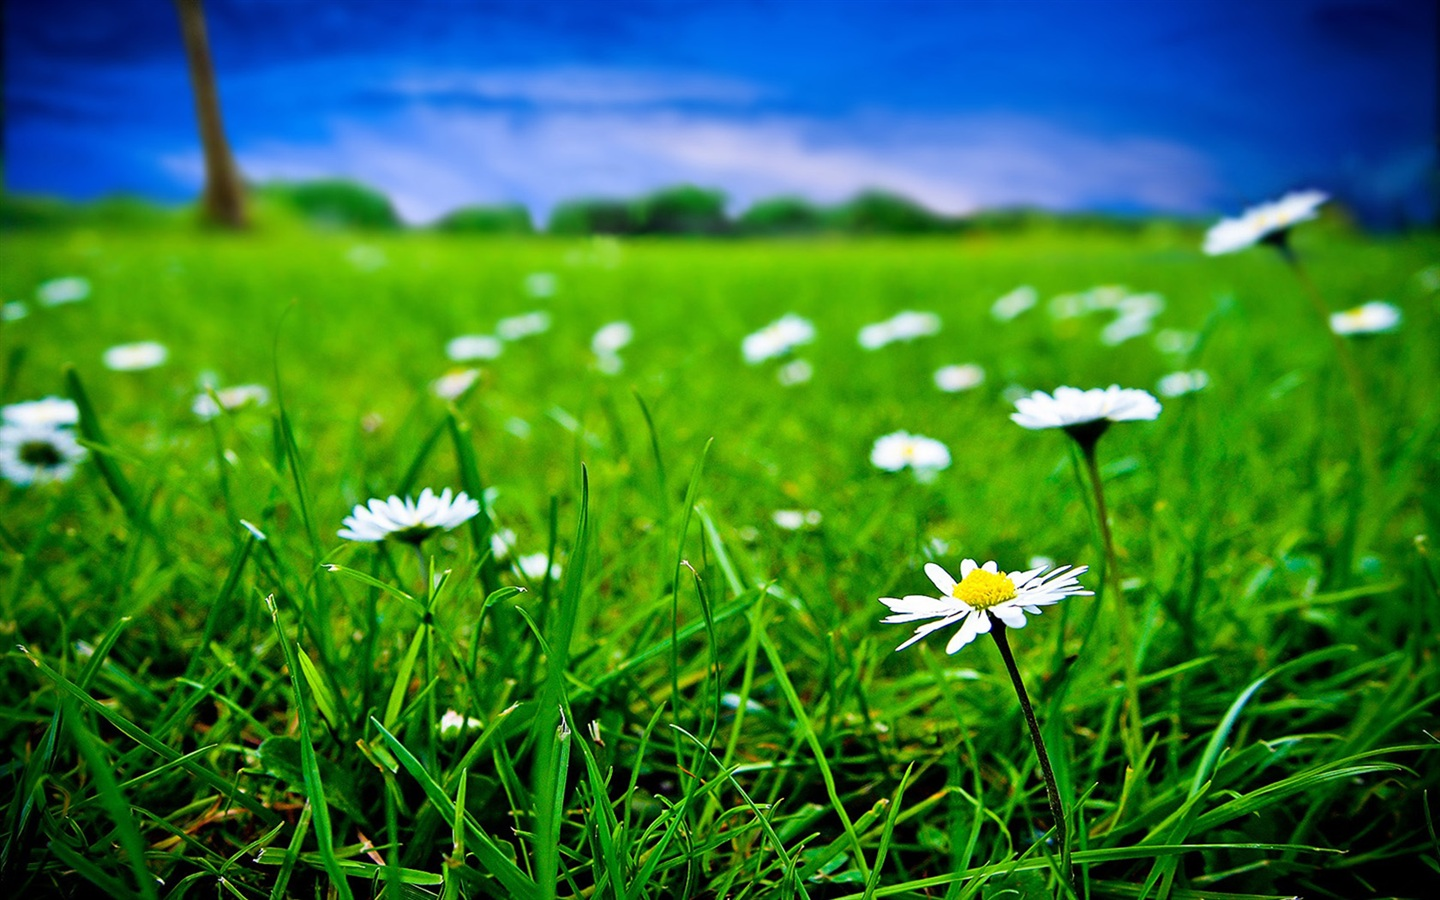 Download wallpaper 1440x900 green grass and white flowers for Green and white wallpaper